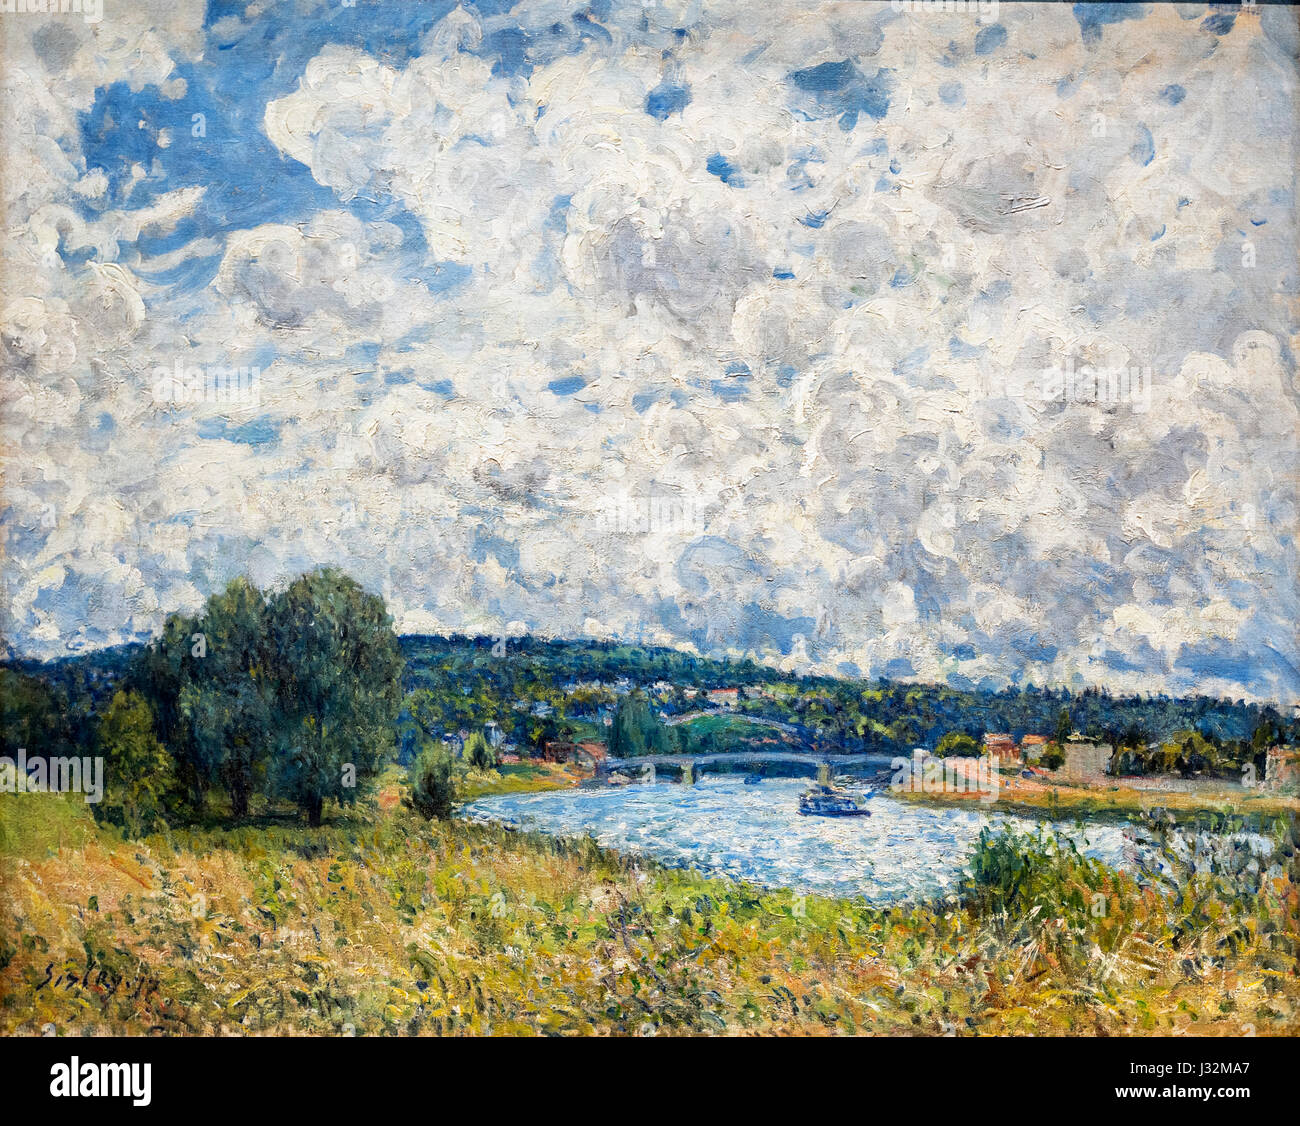 Alfred Sisley. Painting entitled 'La Seine a Suresnes' by Alfred Sisley (1839-1899), oil on canvas, 1877 - Stock Image